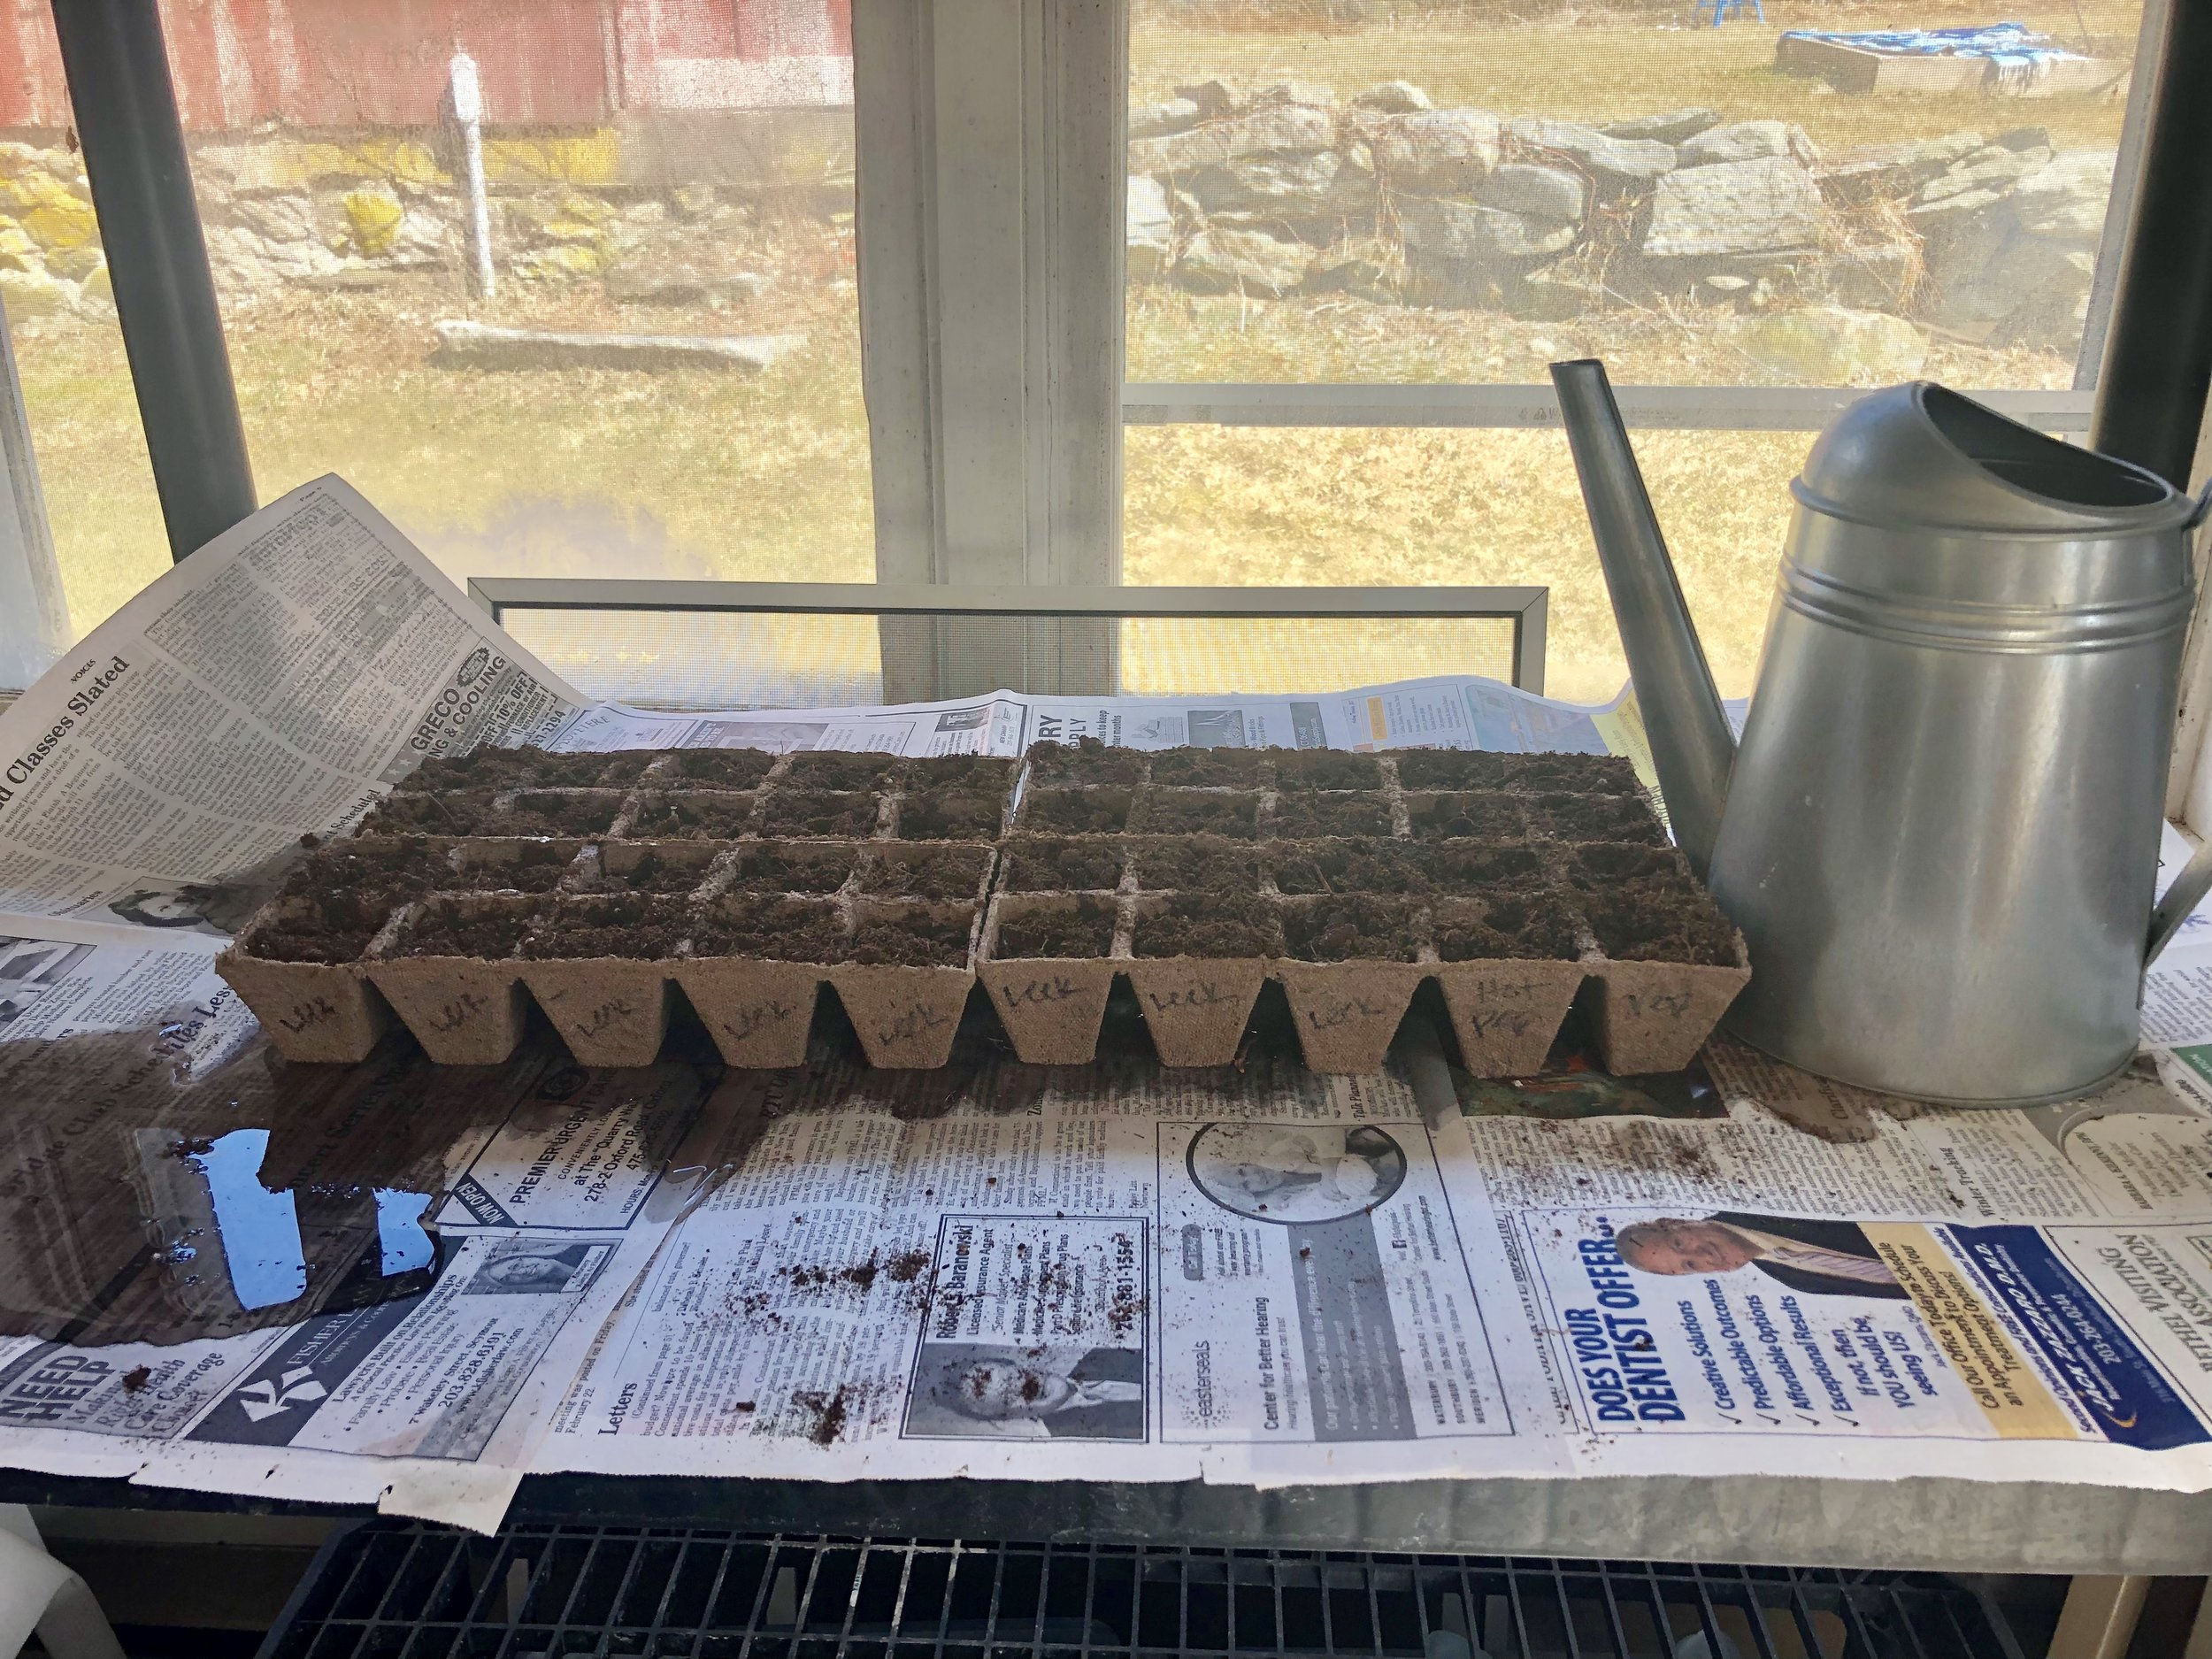 This is just phase 1. At our height, we will have 87 plants started indoors and even more planted directly in the ground outside. I'm so excited.